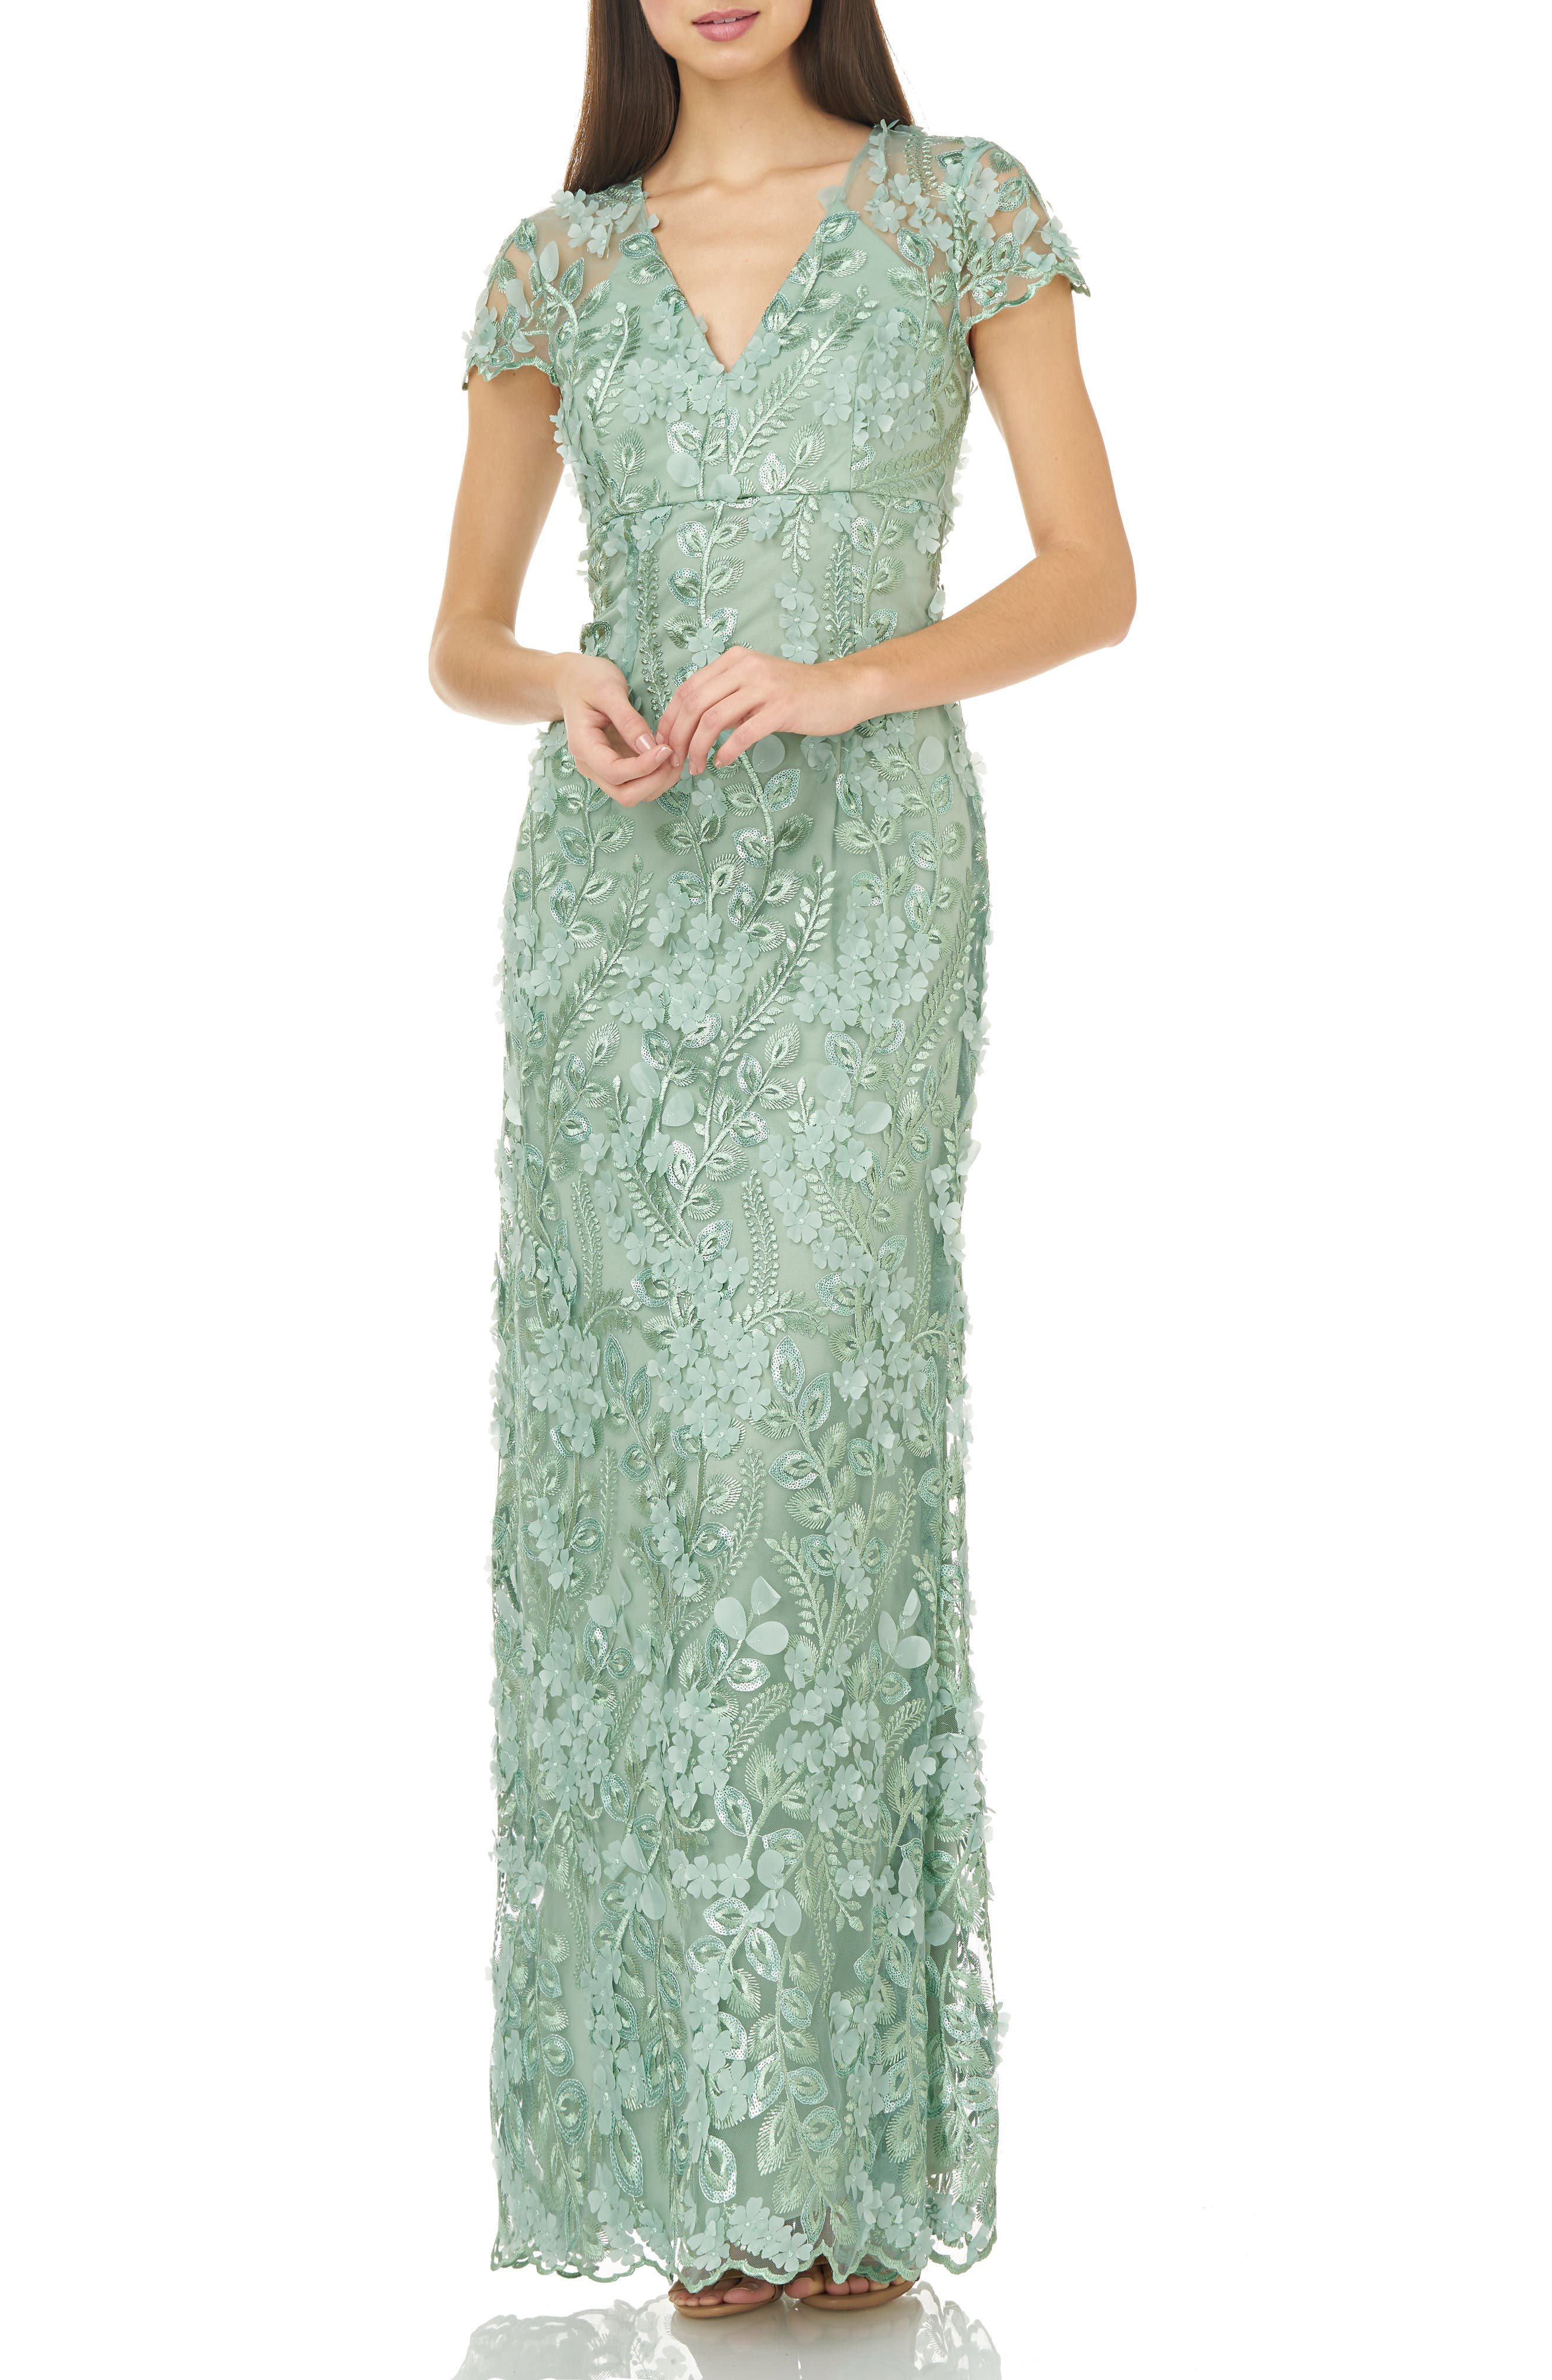 CARMEN MARC VALVO INFUSION, Petals Embellished Gown, Main thumbnail 1, color, CELADON